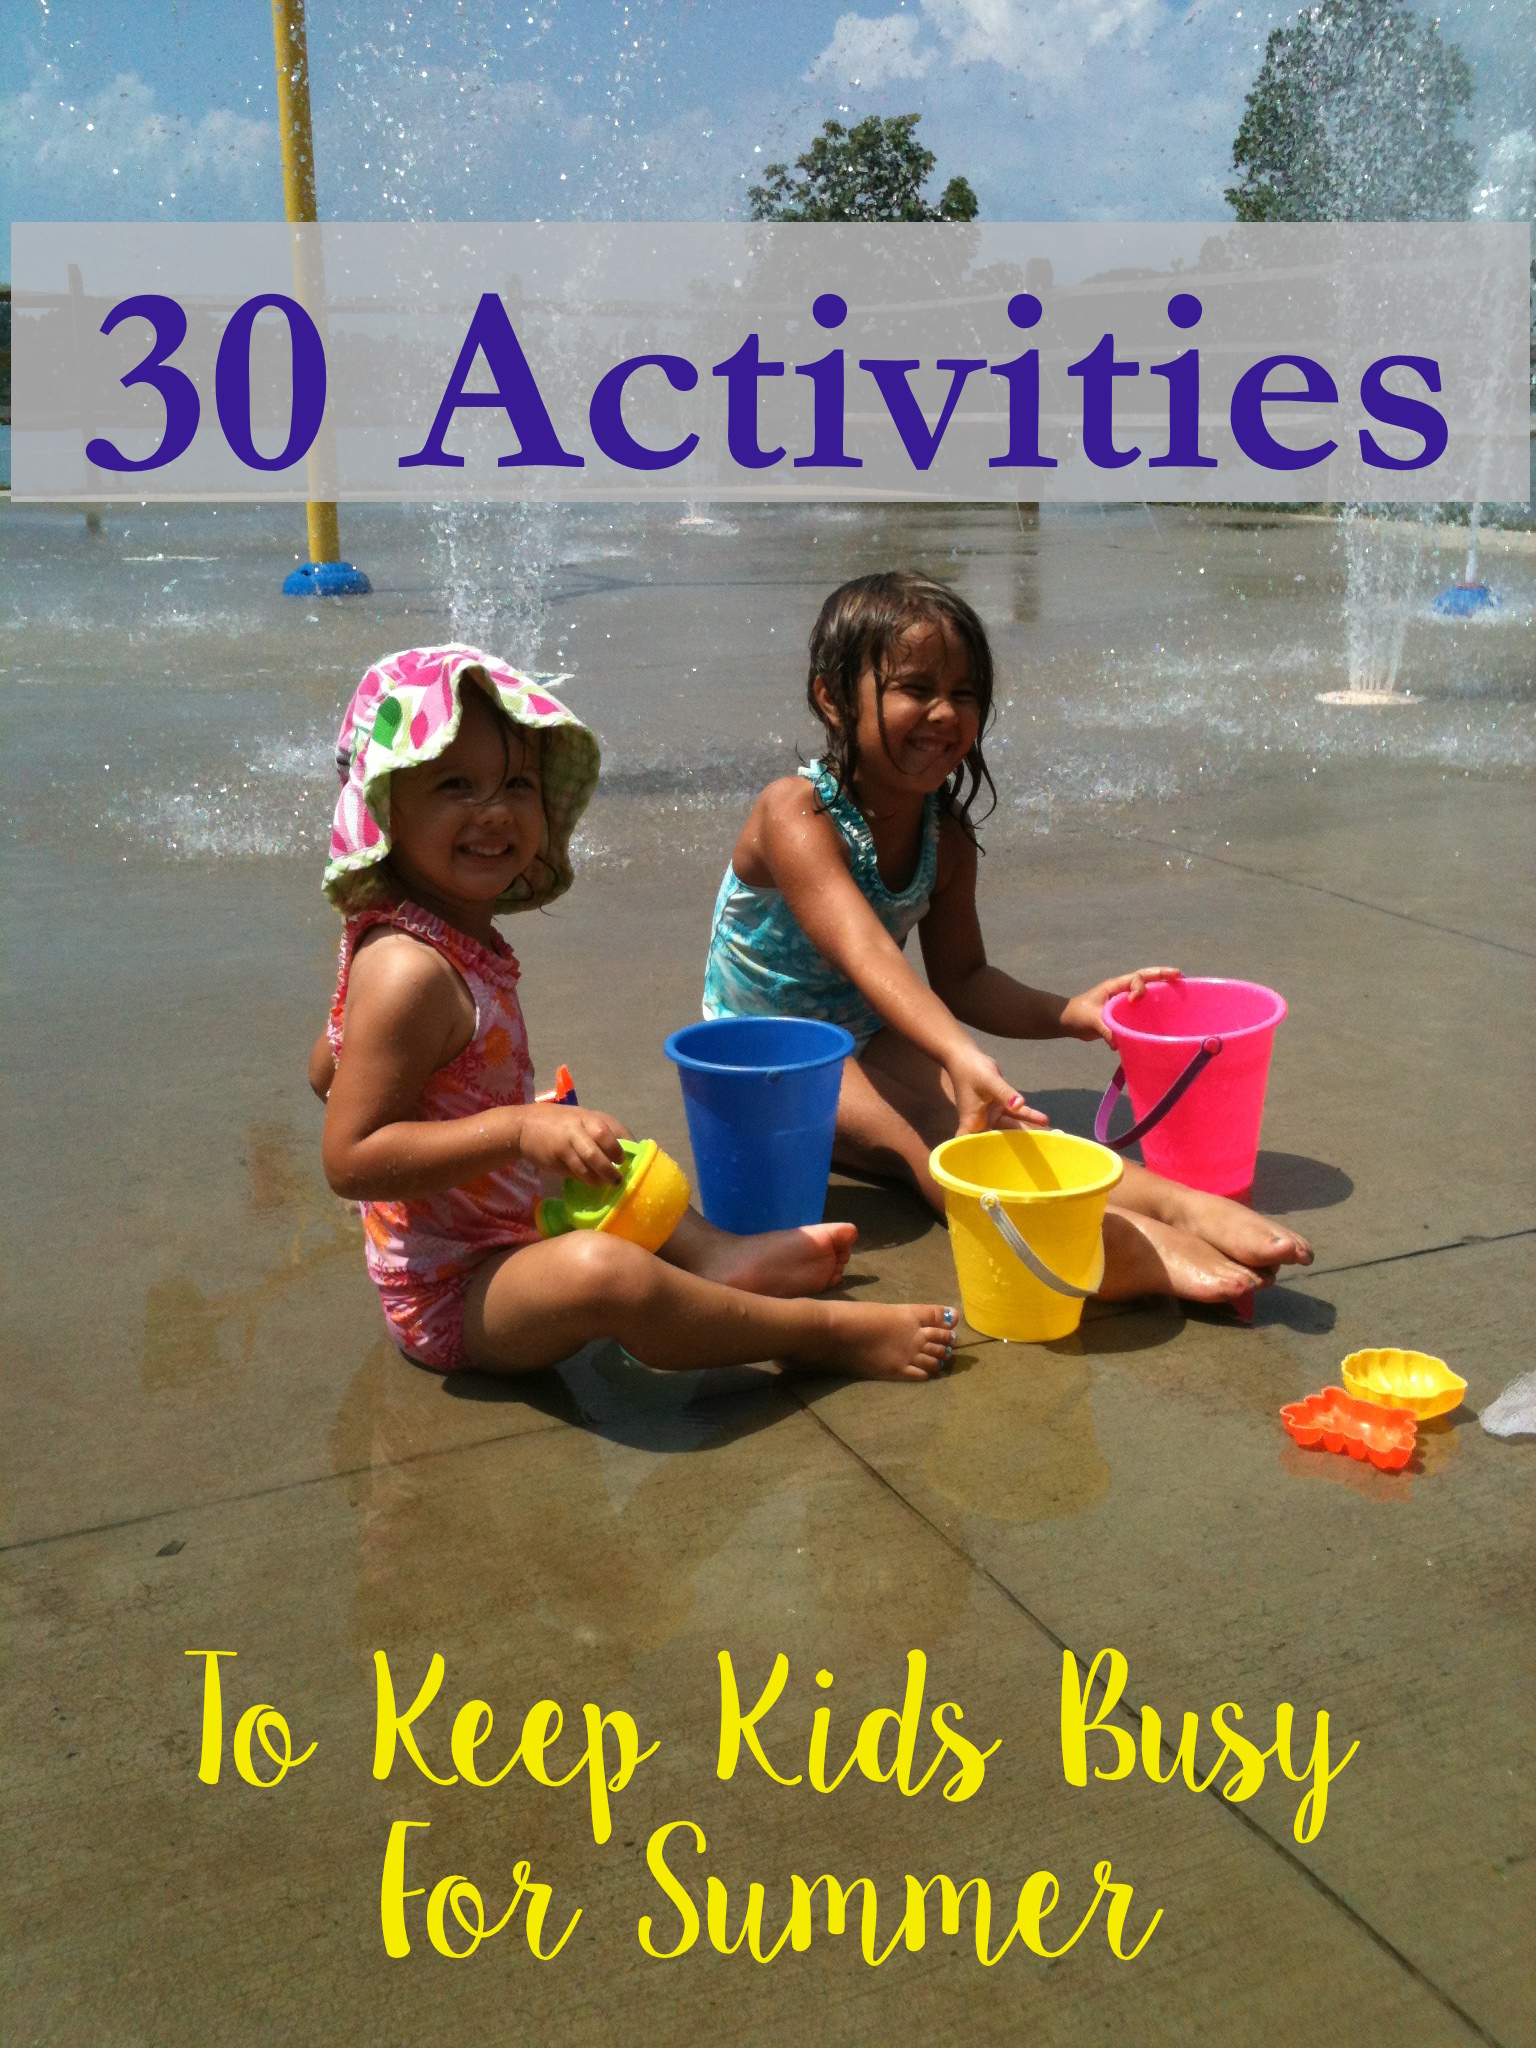 30 Activities to Keep Kids Busy for Summer